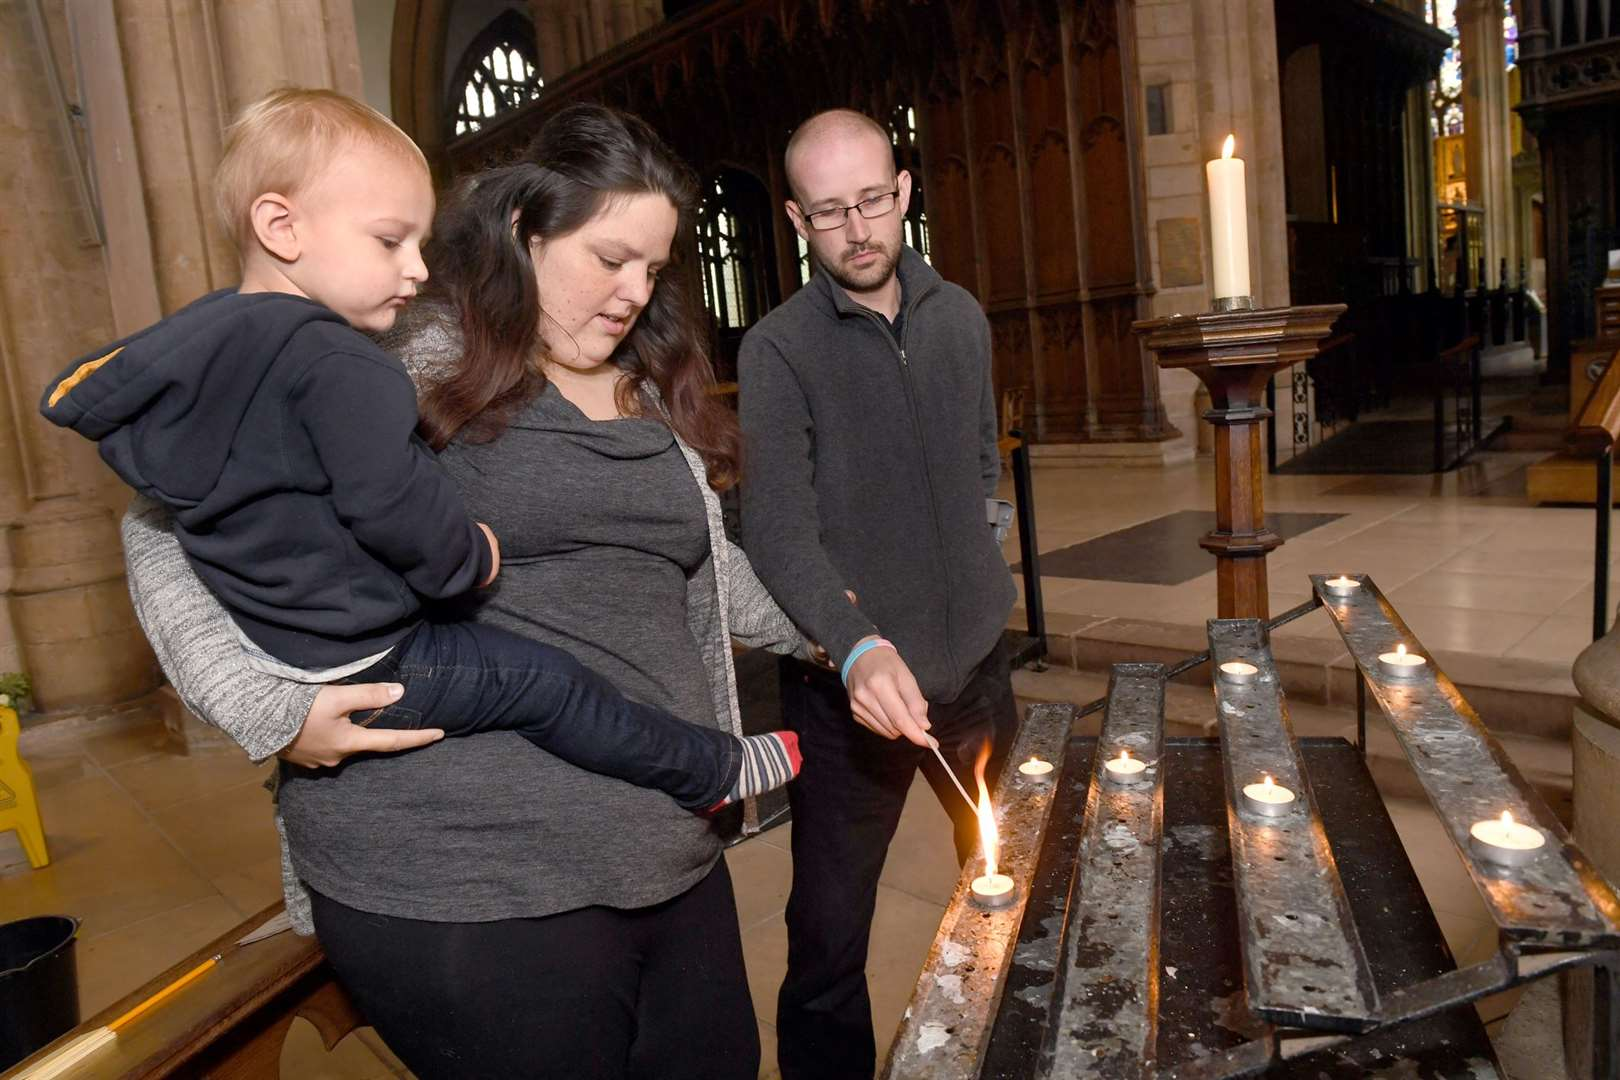 Aimee Scrimshaw and Ben Norfolk who lost their baby at 19 weeks, lighting a candle in Newark Parish Church with their son David-Melvyn Norfolk 2. 011019DD1-6. (18195796)